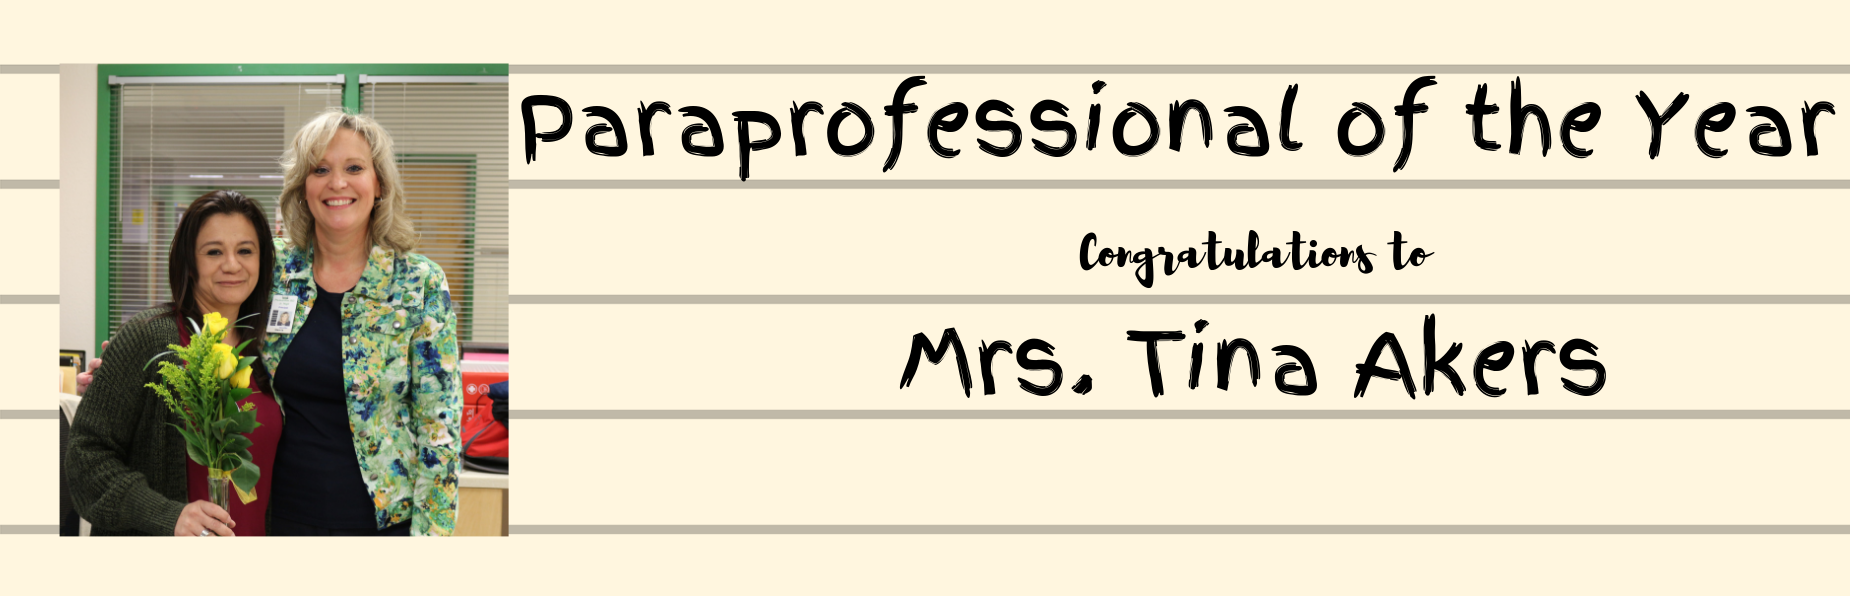 paraprofessional of the year